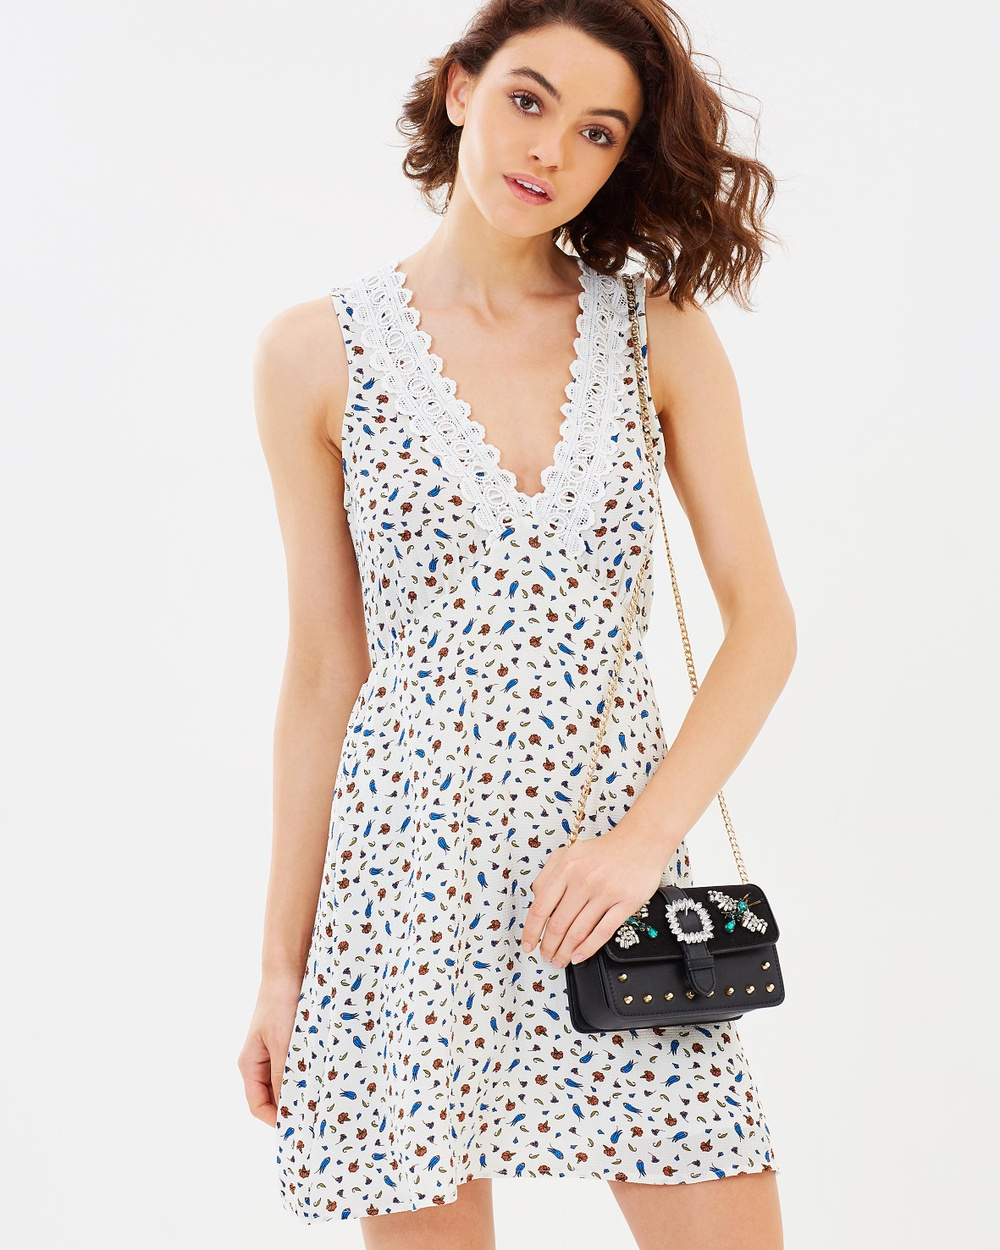 Dazie Infinite Horizons Dress Printed Dresses White Floral Infinite Horizons Dress